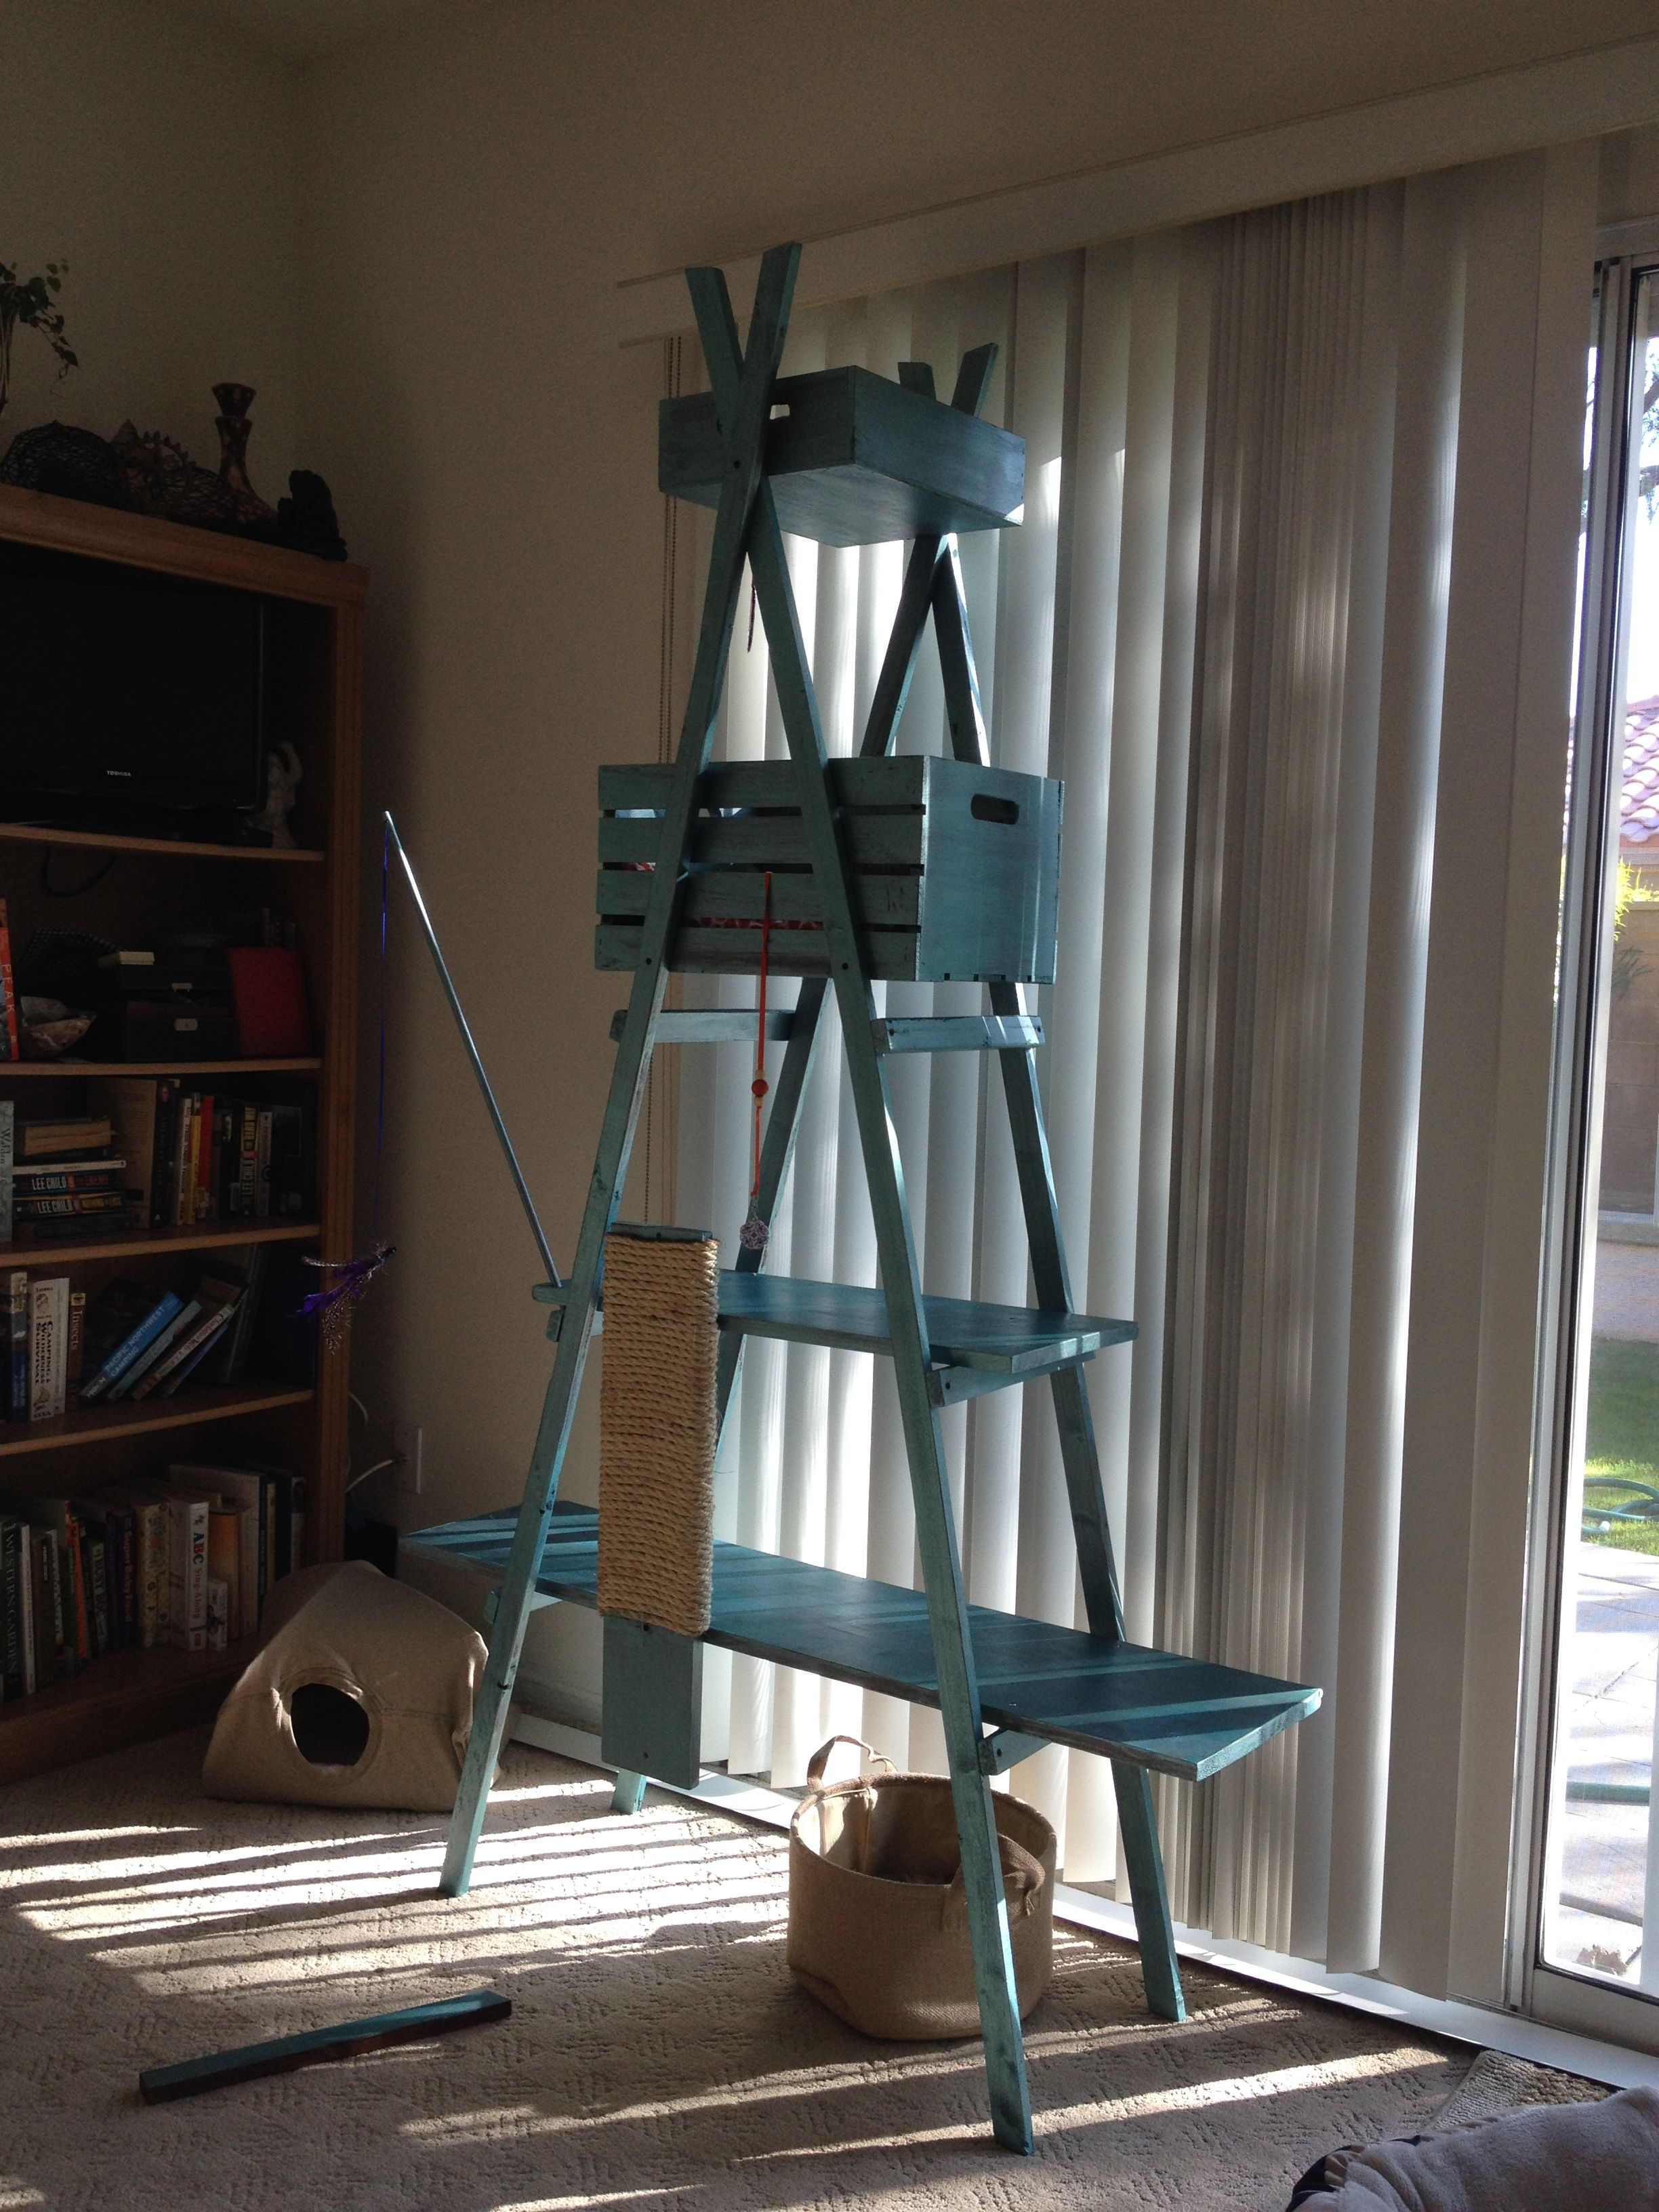 Diy cat climber Under $25 Ladder style Made with clearance paint